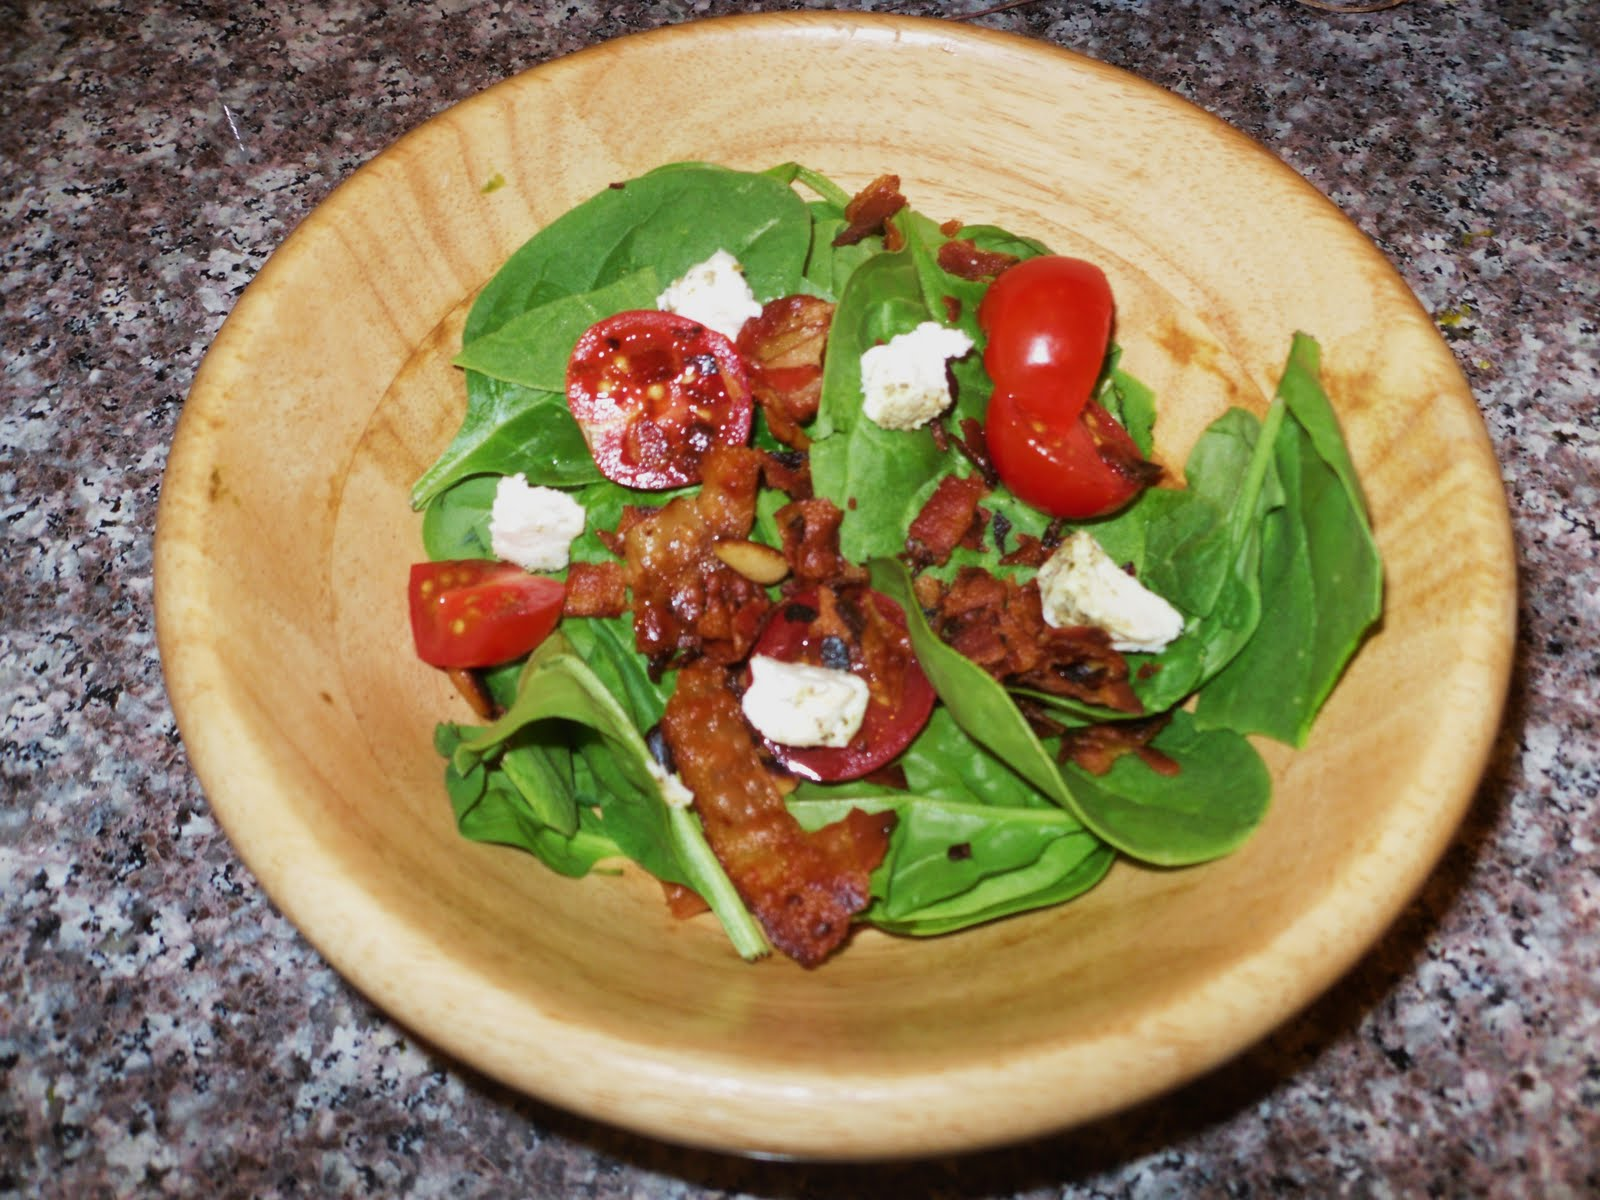 ... Joy Bistro: Warm Spinach-Bacon Salad with Goat Cheese & Tomatoes